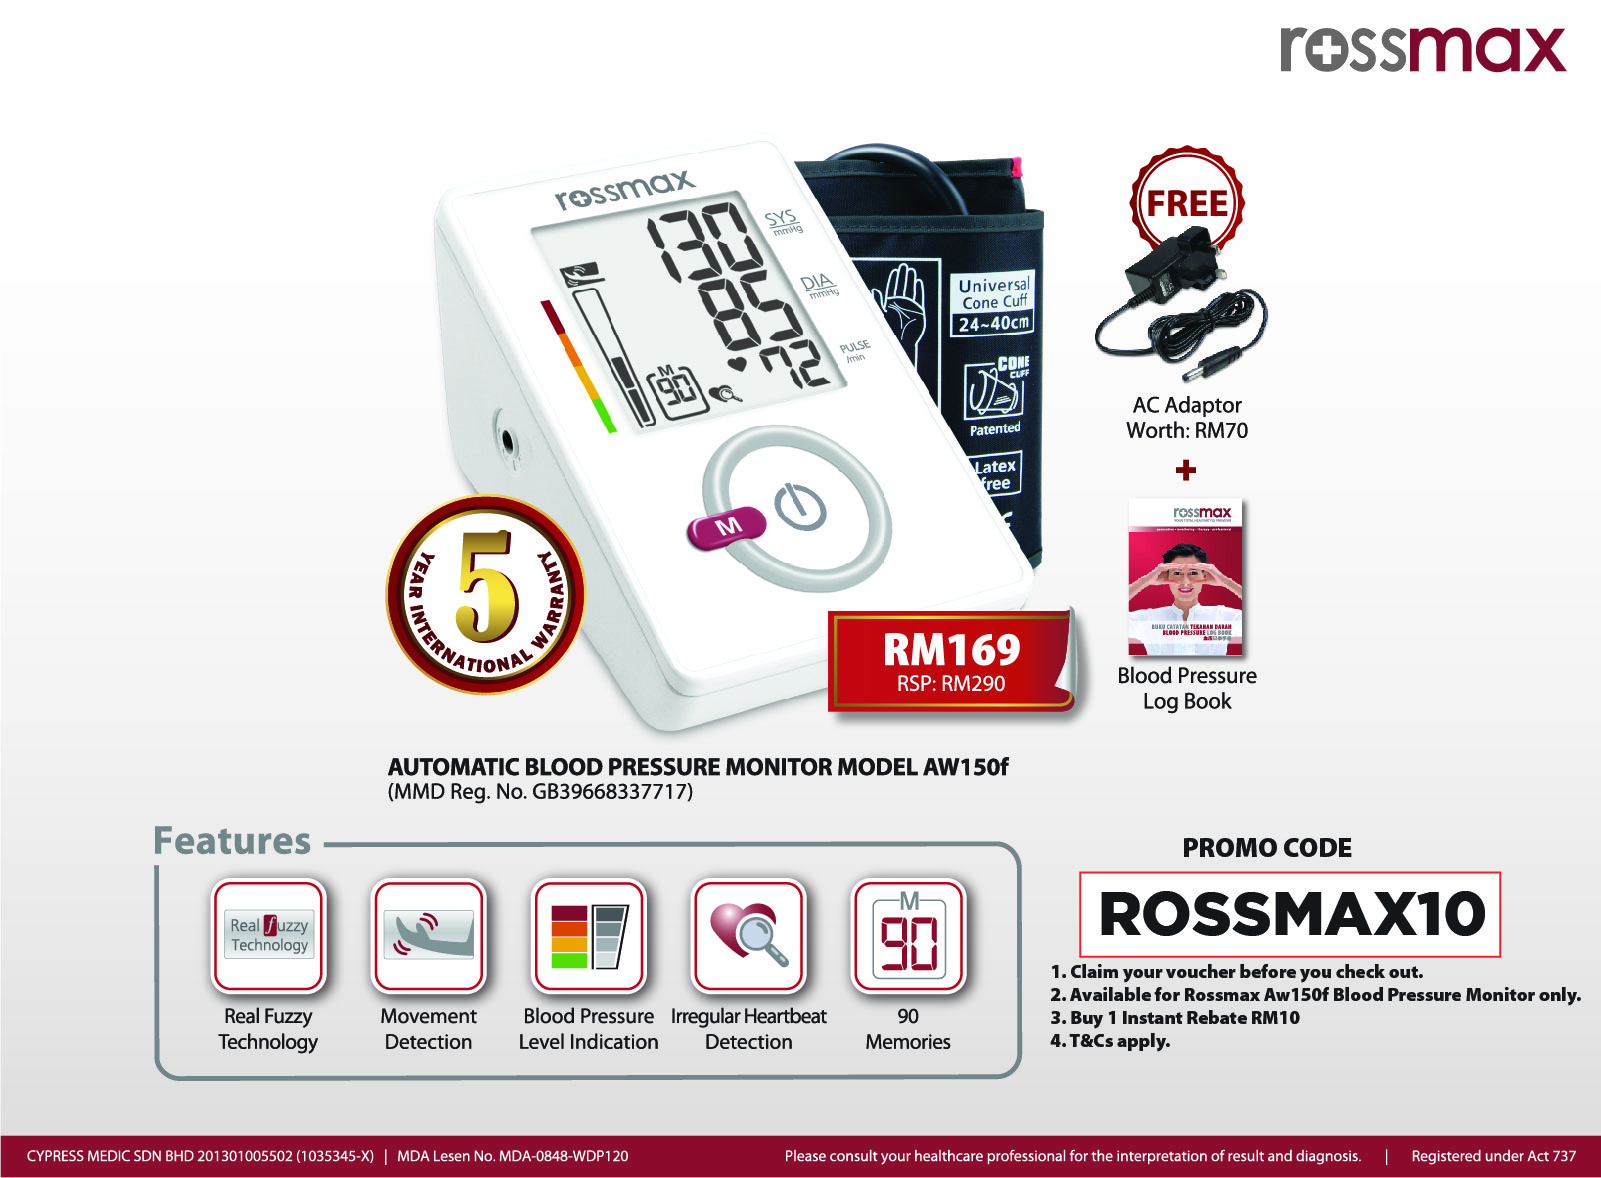 https://www.alpropharmacy.com/oneclick/product/rossmax-aw150f-blood-pressure-monitor/